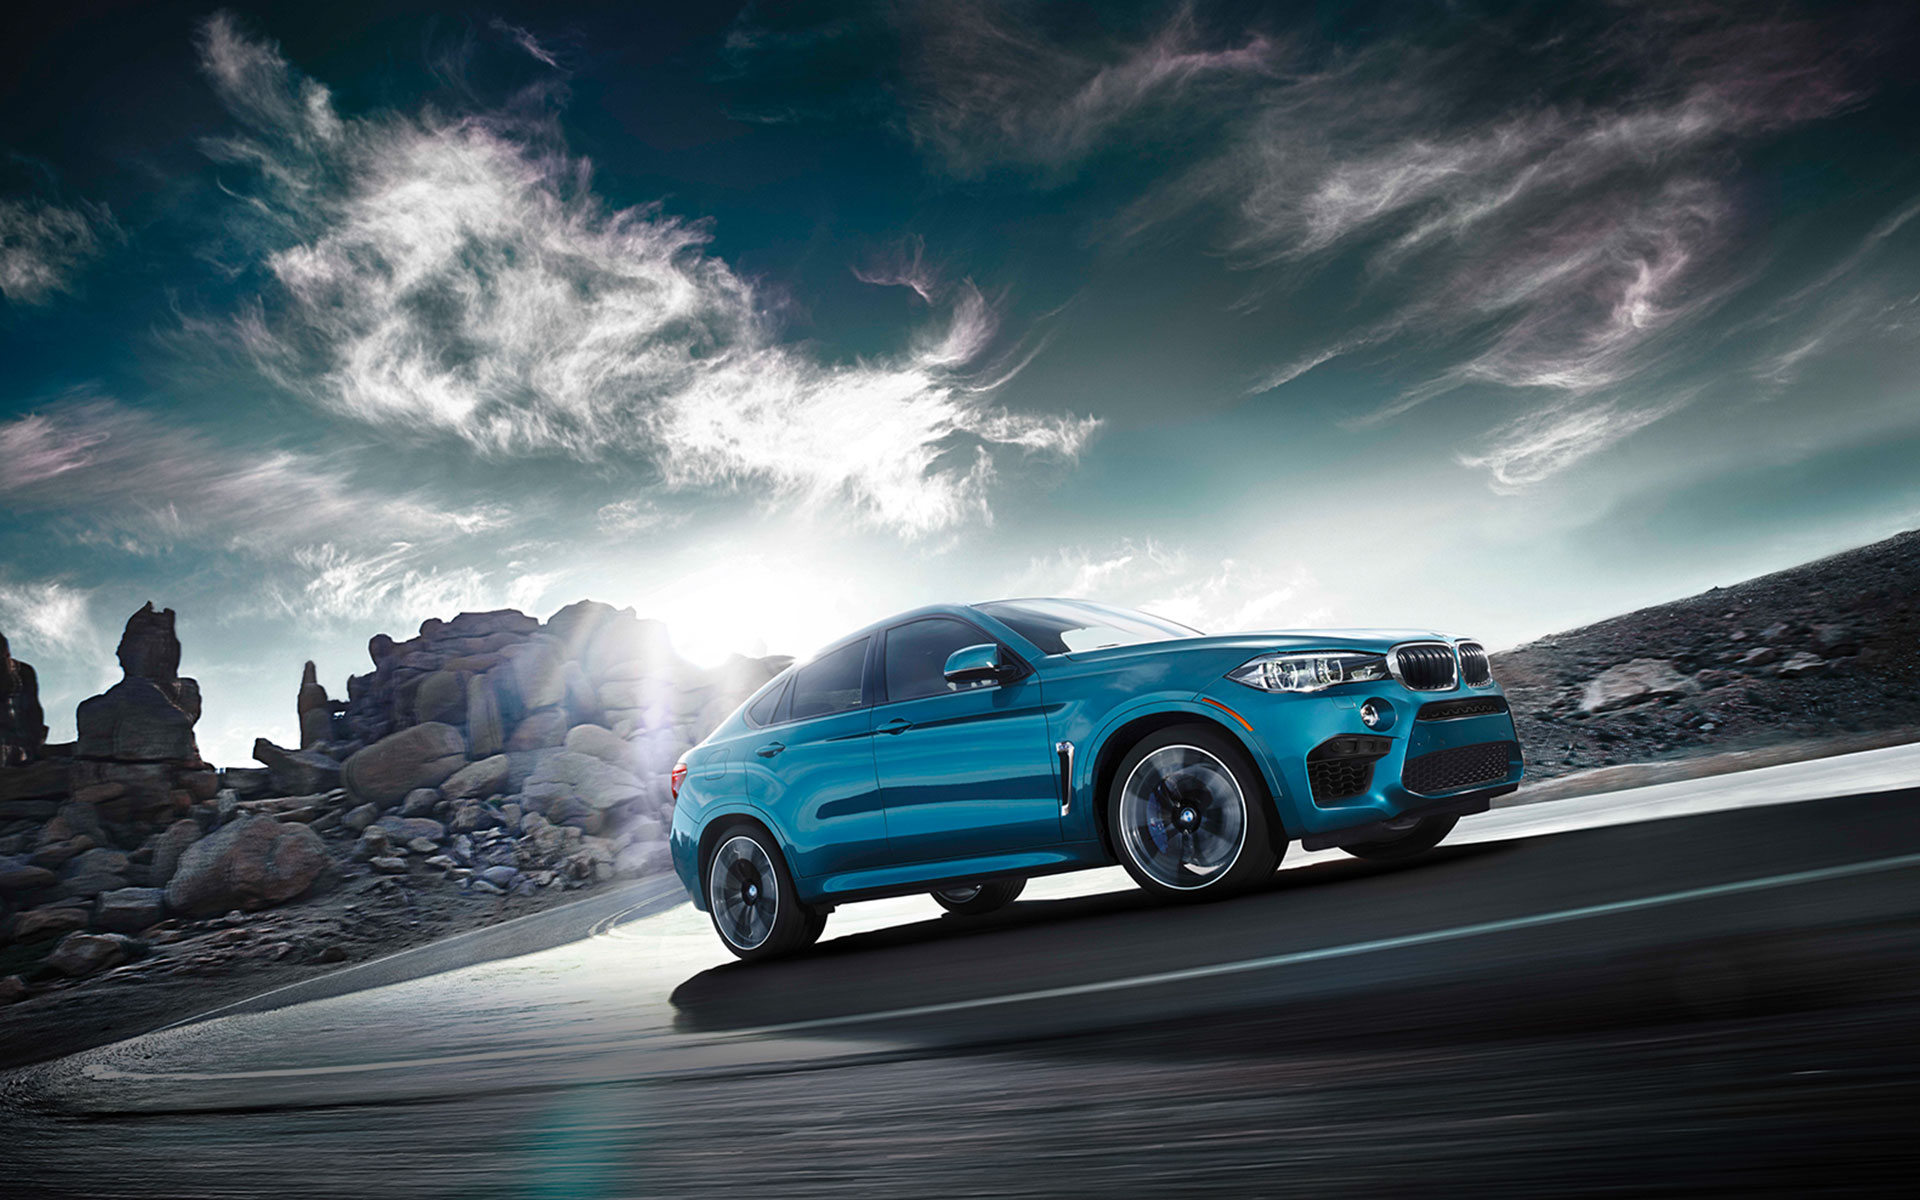 The Most Expensive Cars. BMW X6 M Sport Utility 4D